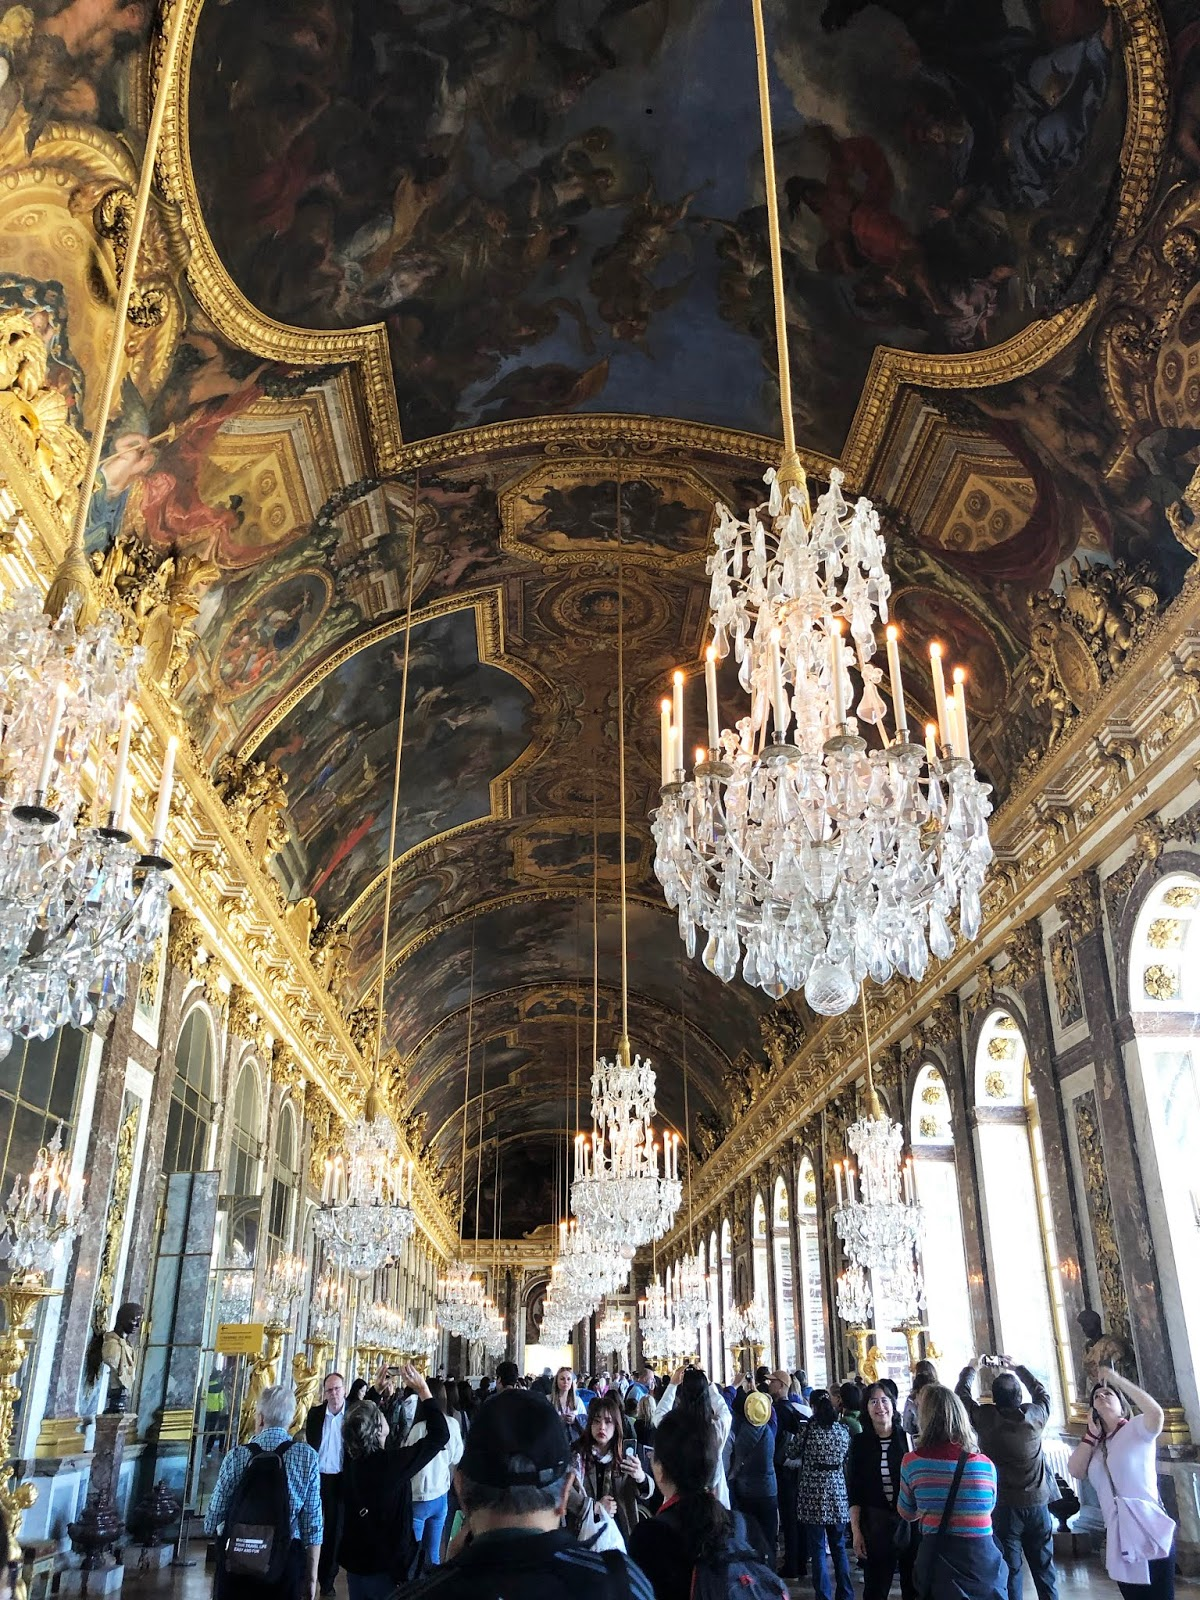 things to do in paris, paris itinerary, attractions in paris